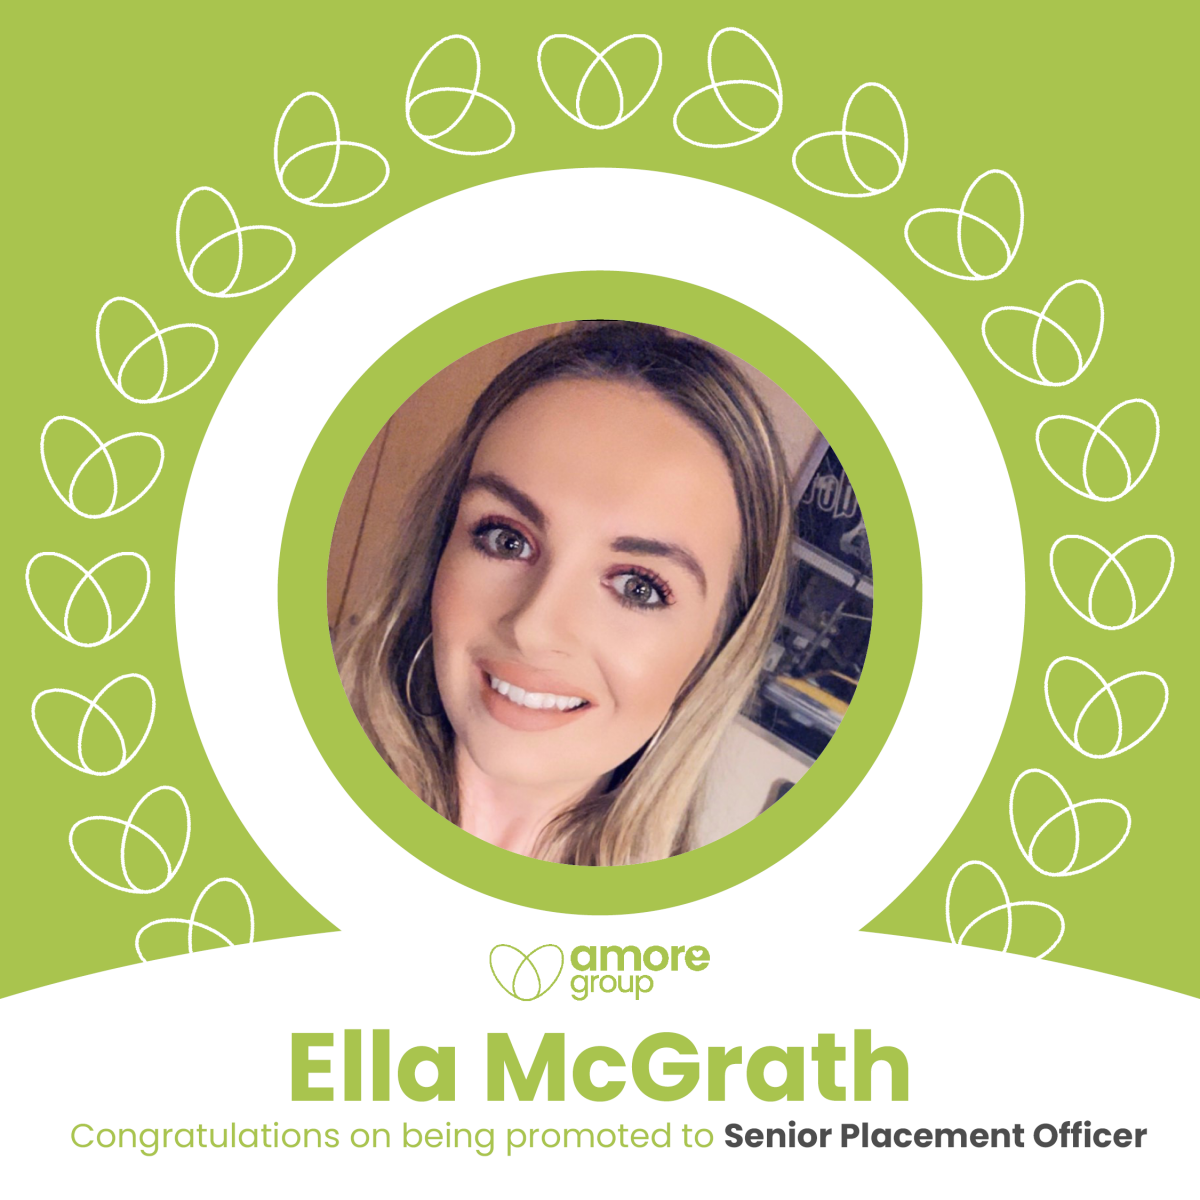 Congratulations to Ella McGrath on being promoted to Senior Placement Officer